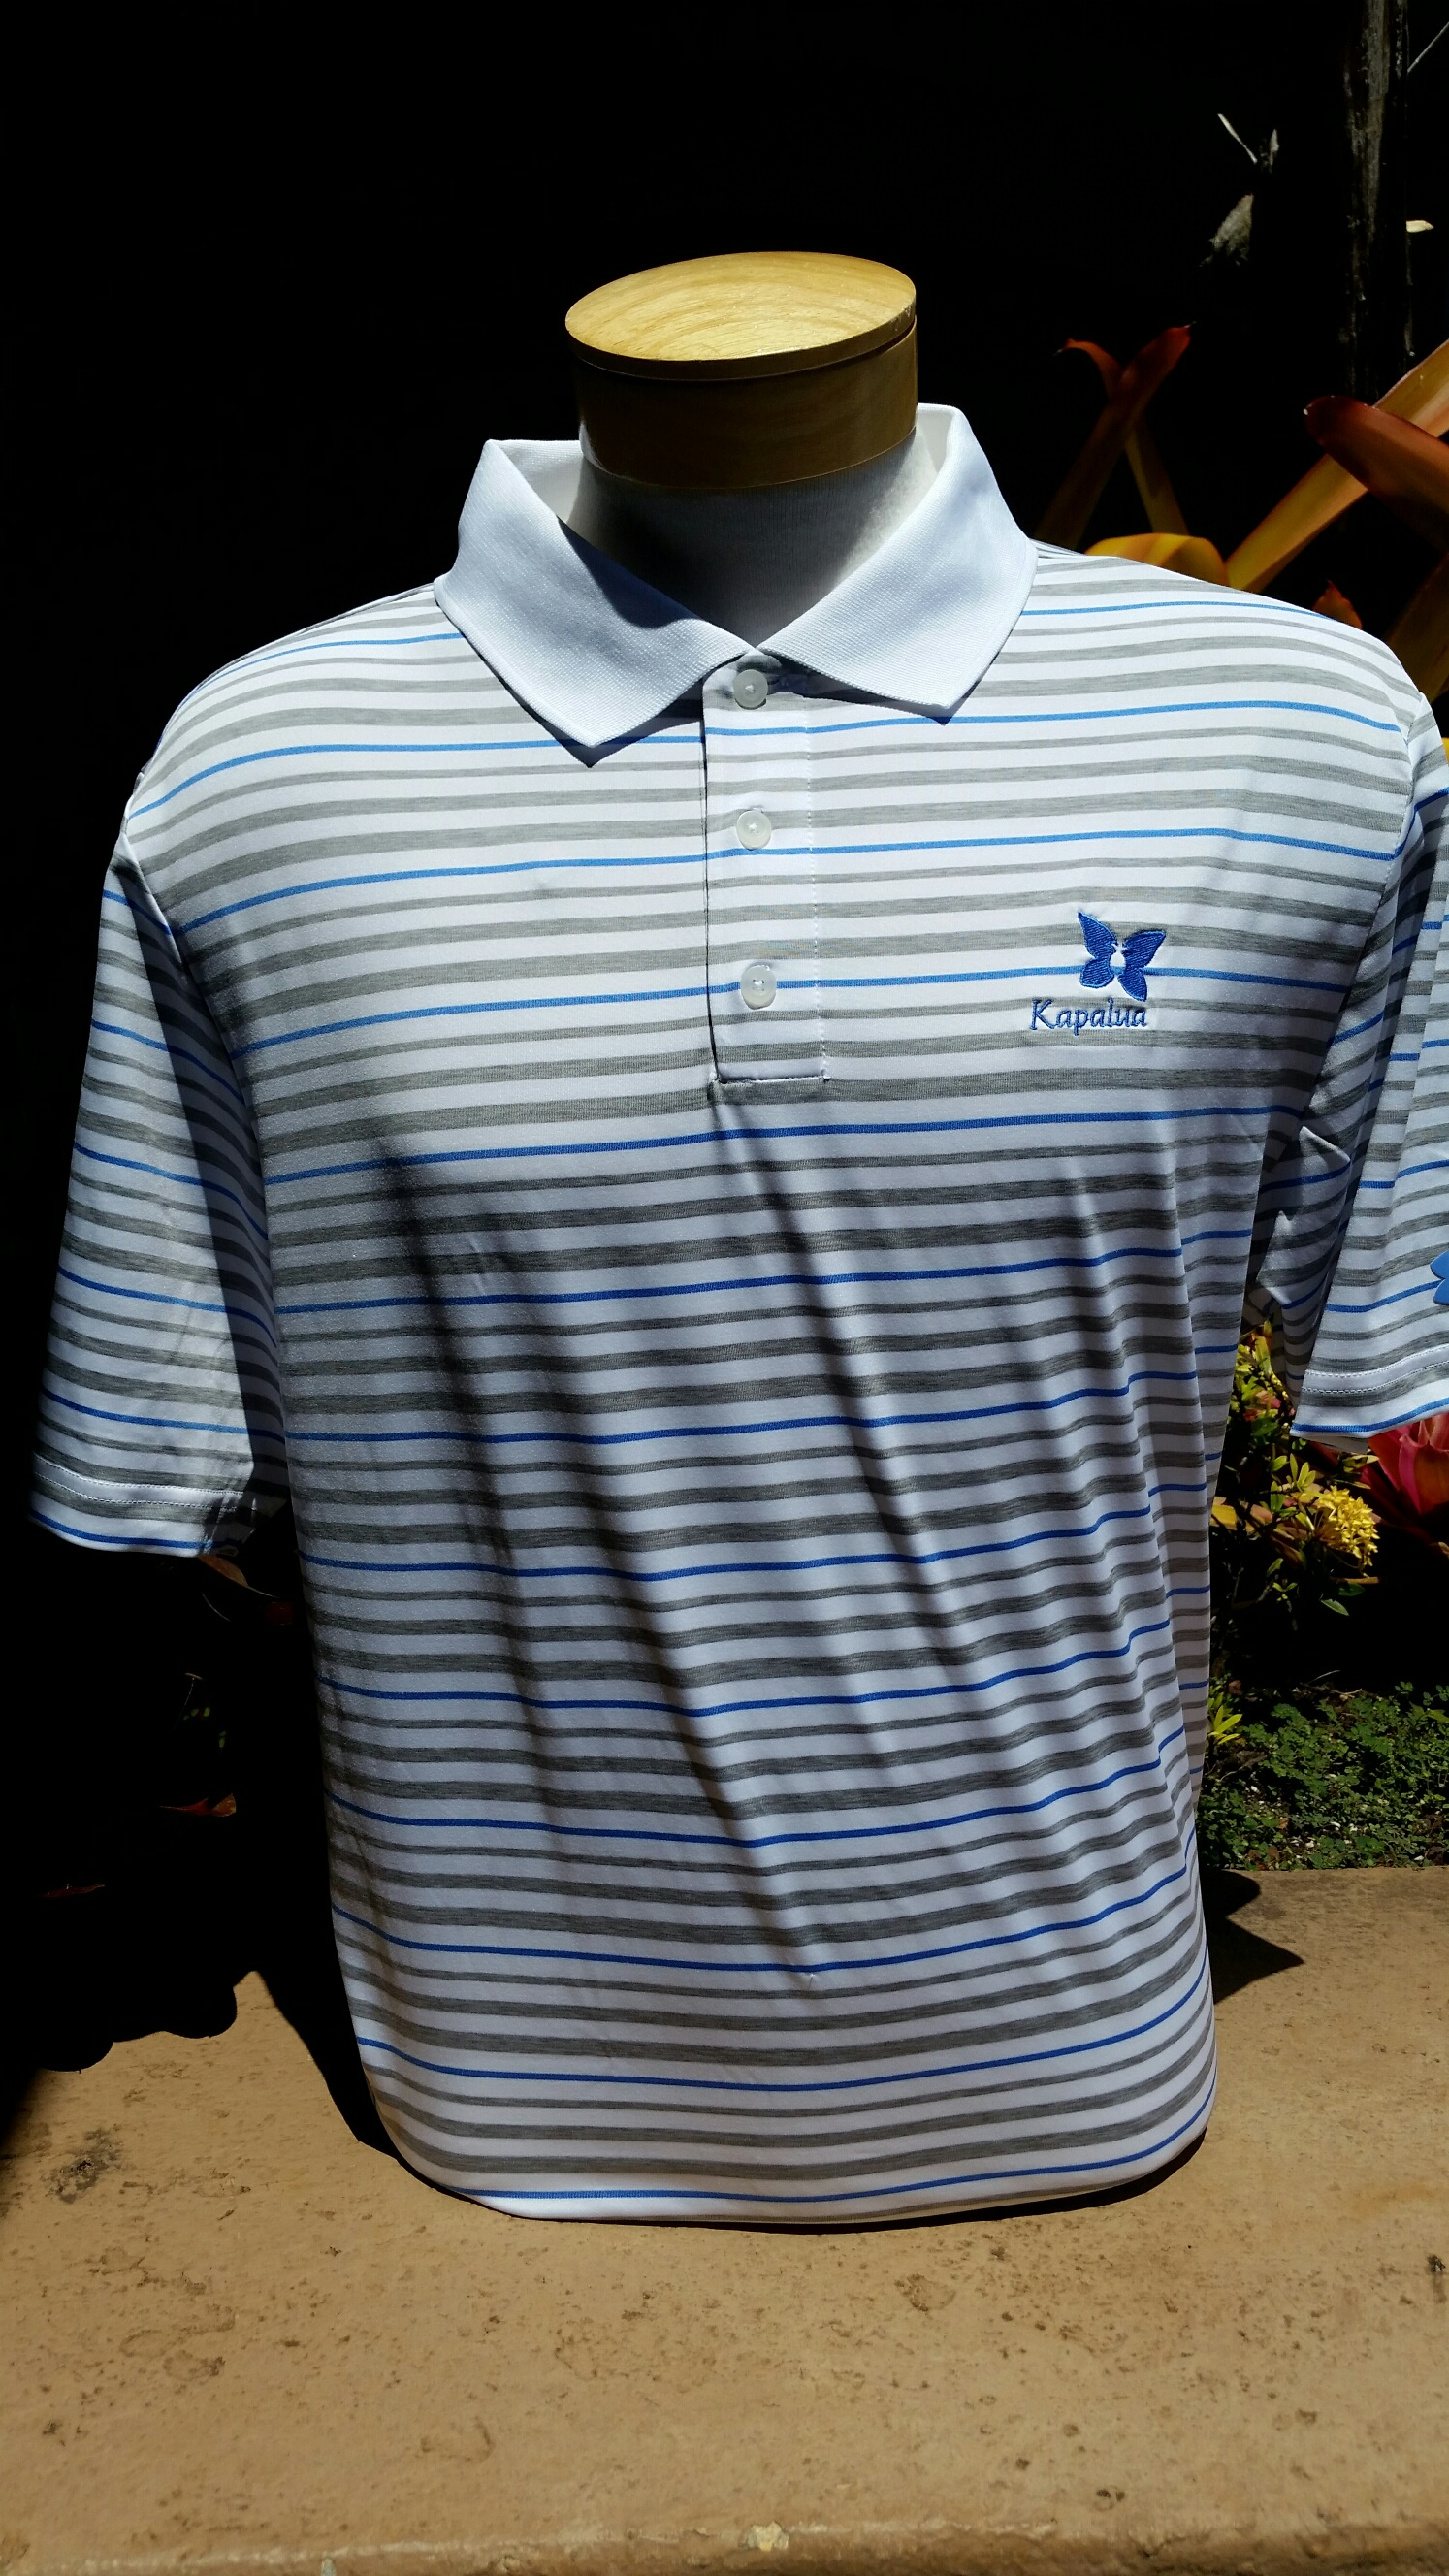 UA Mens Polo Shirt - White w/Blue & Gray stripes